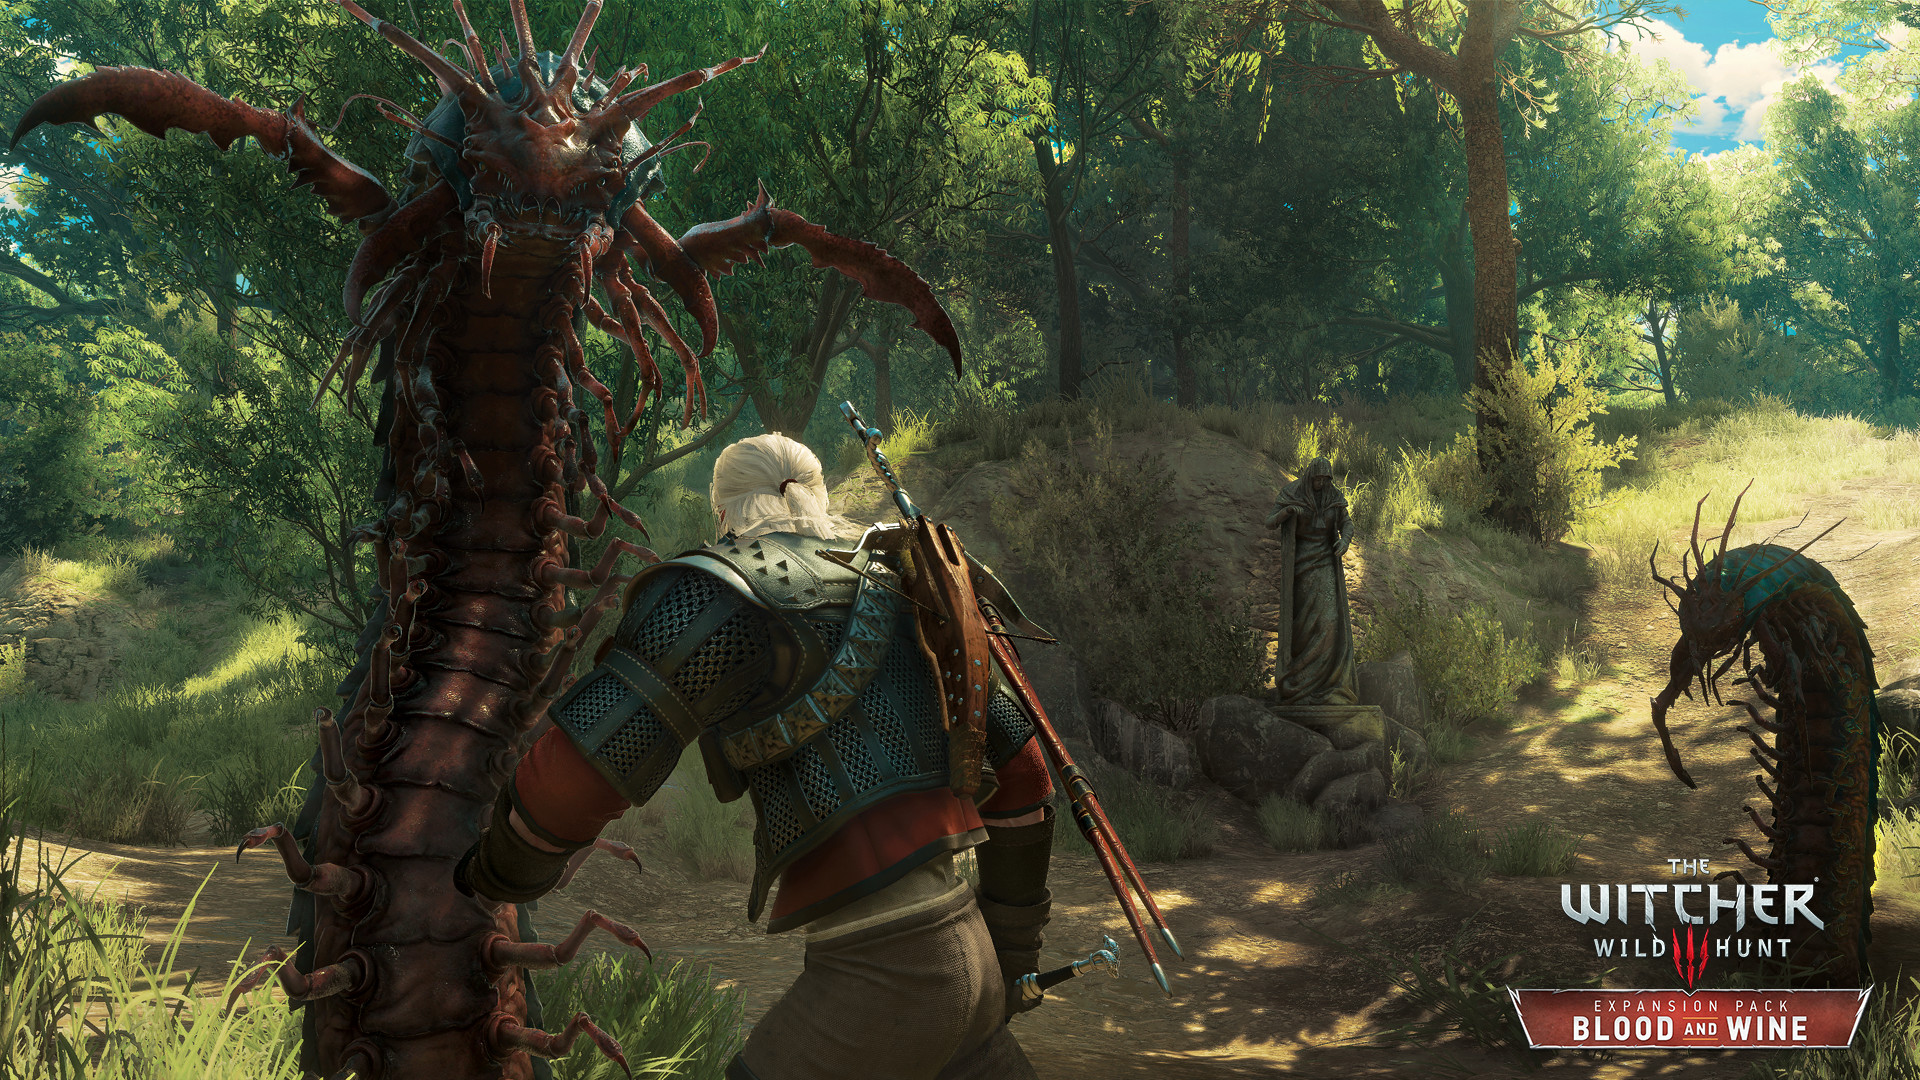 The Witcher 3: Wild Hunt - Expansion Pass · AppID: 355880